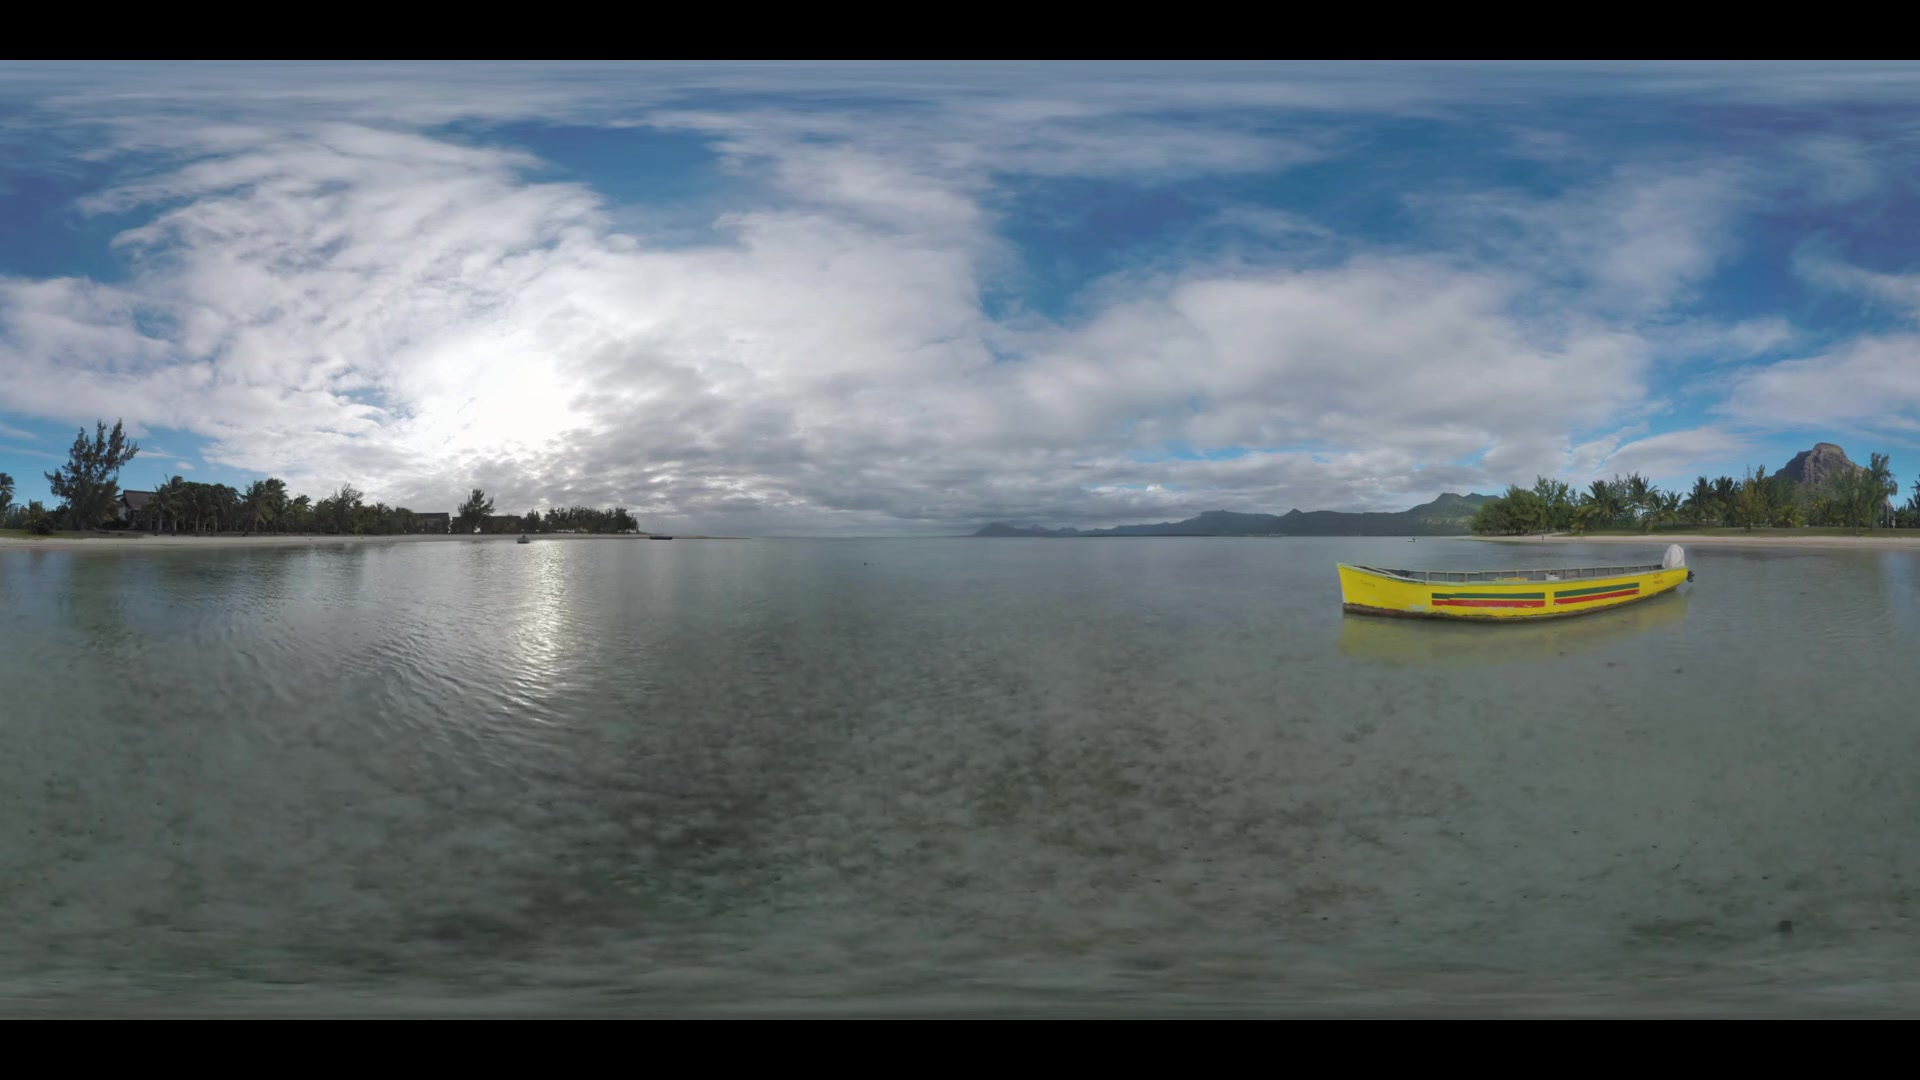 360 VR video. Landscape of Mauritius on cloudy day. View to the boat in shallow ocean water, coast with palms and mountains with Le Morne Brabant